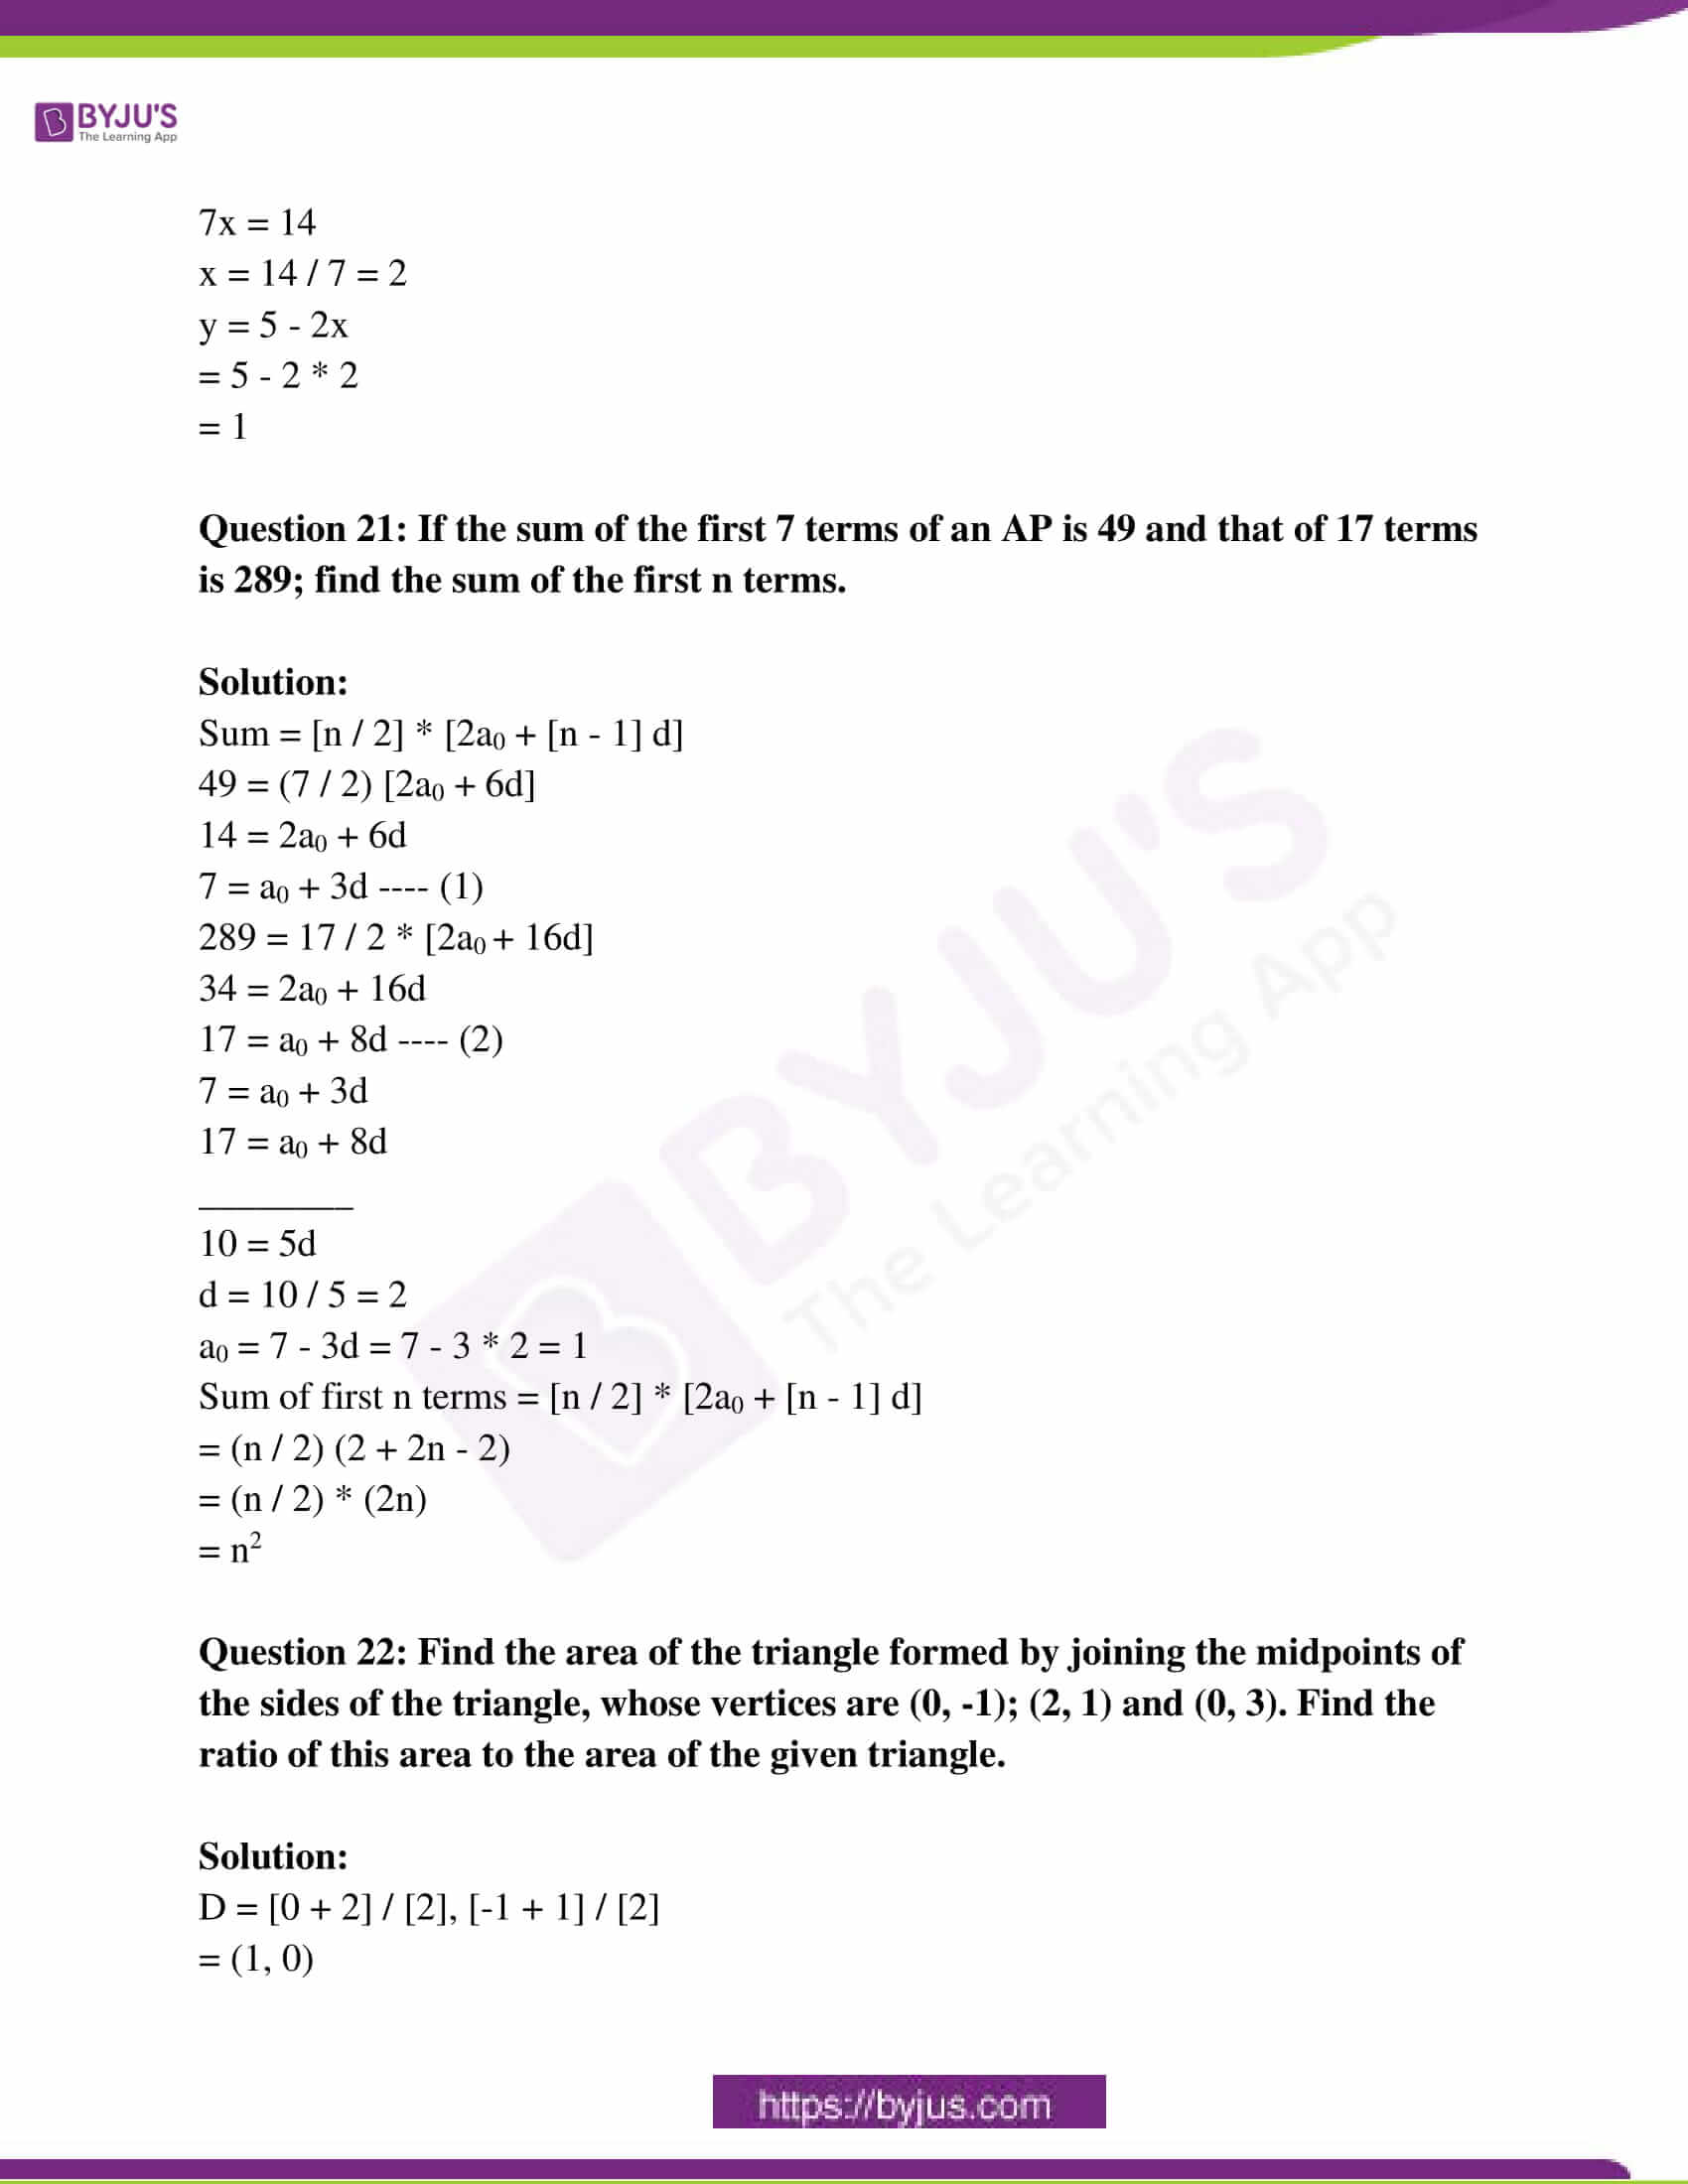 ap class 10 maths question paper 1 sol march 2016 09